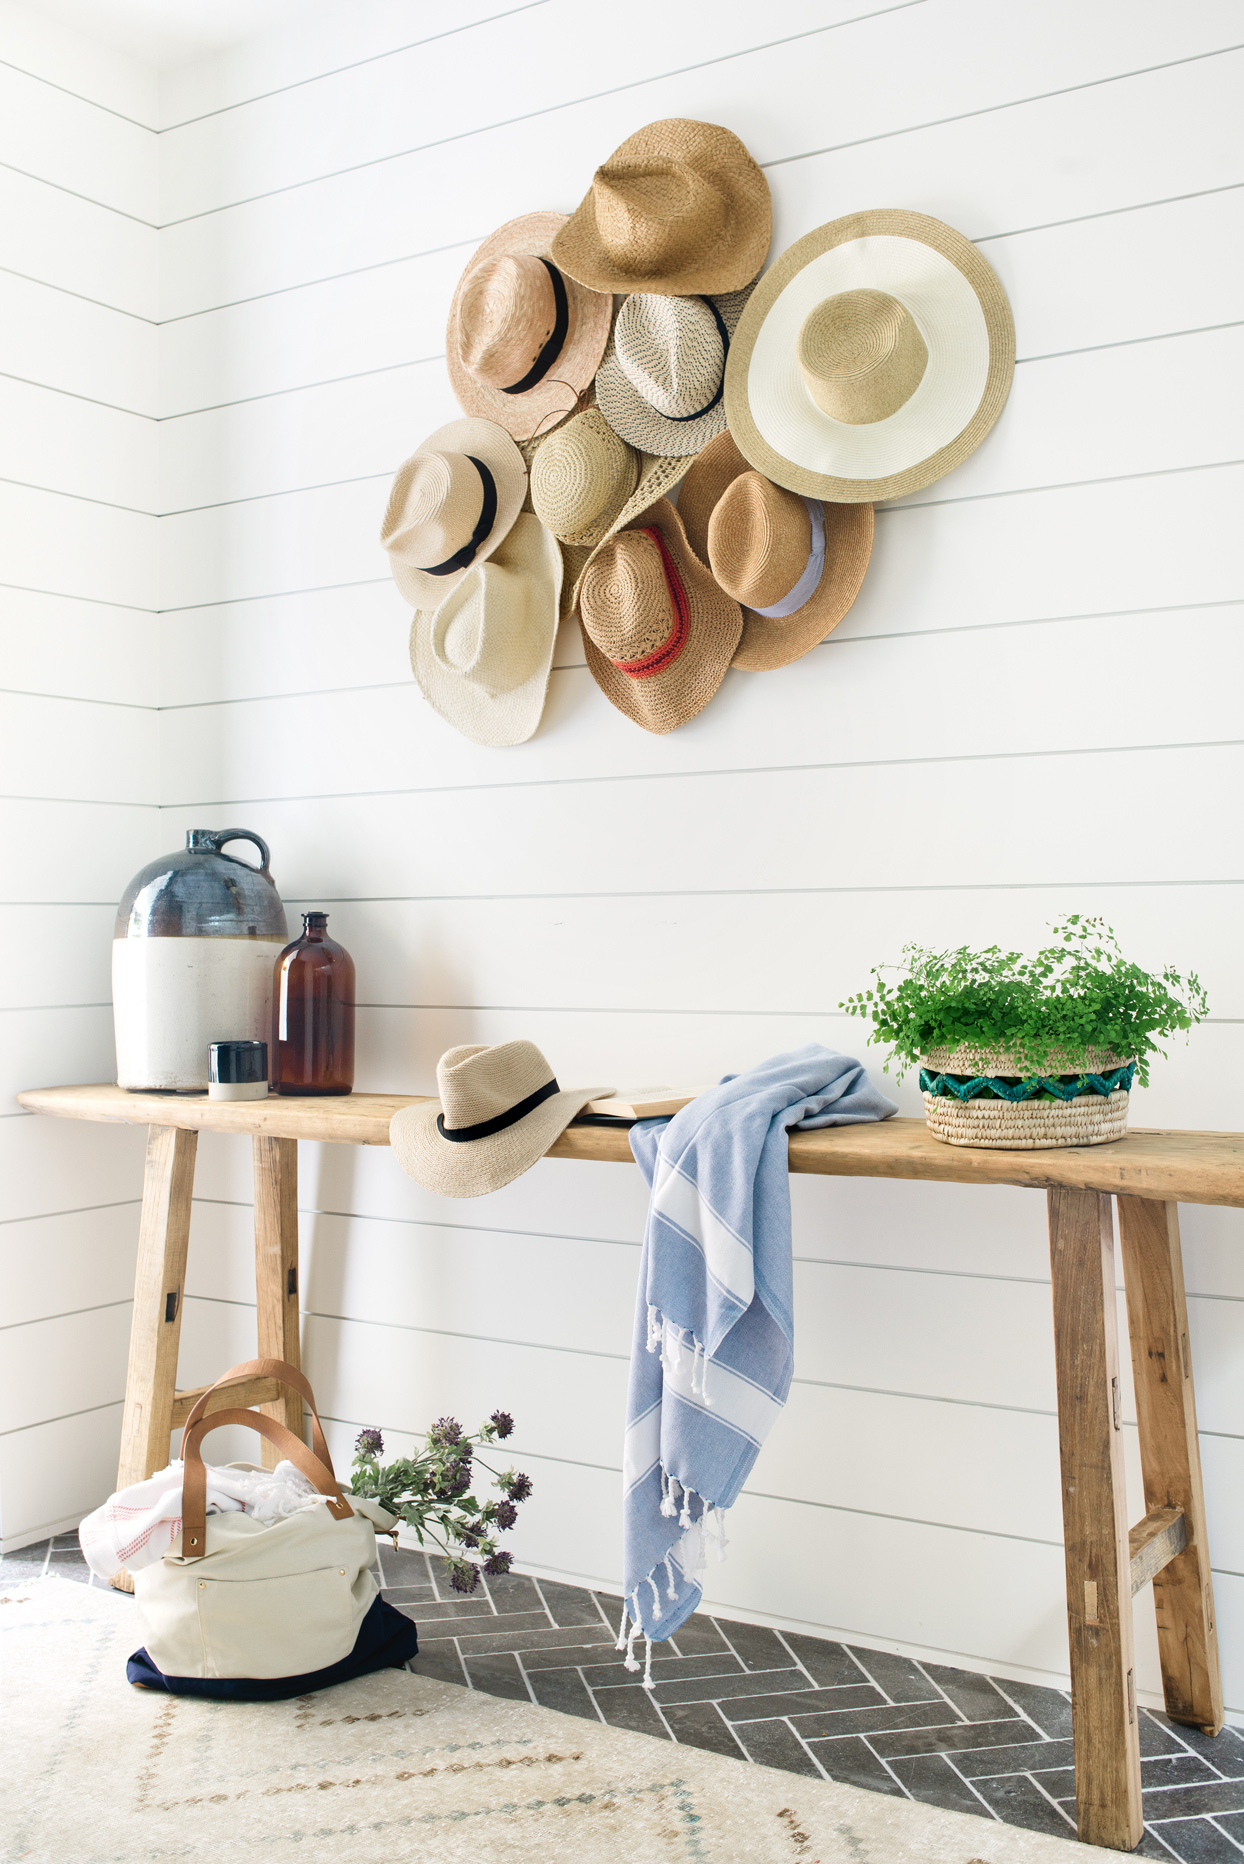 various hats hung on entryway wall with wooden table beneath